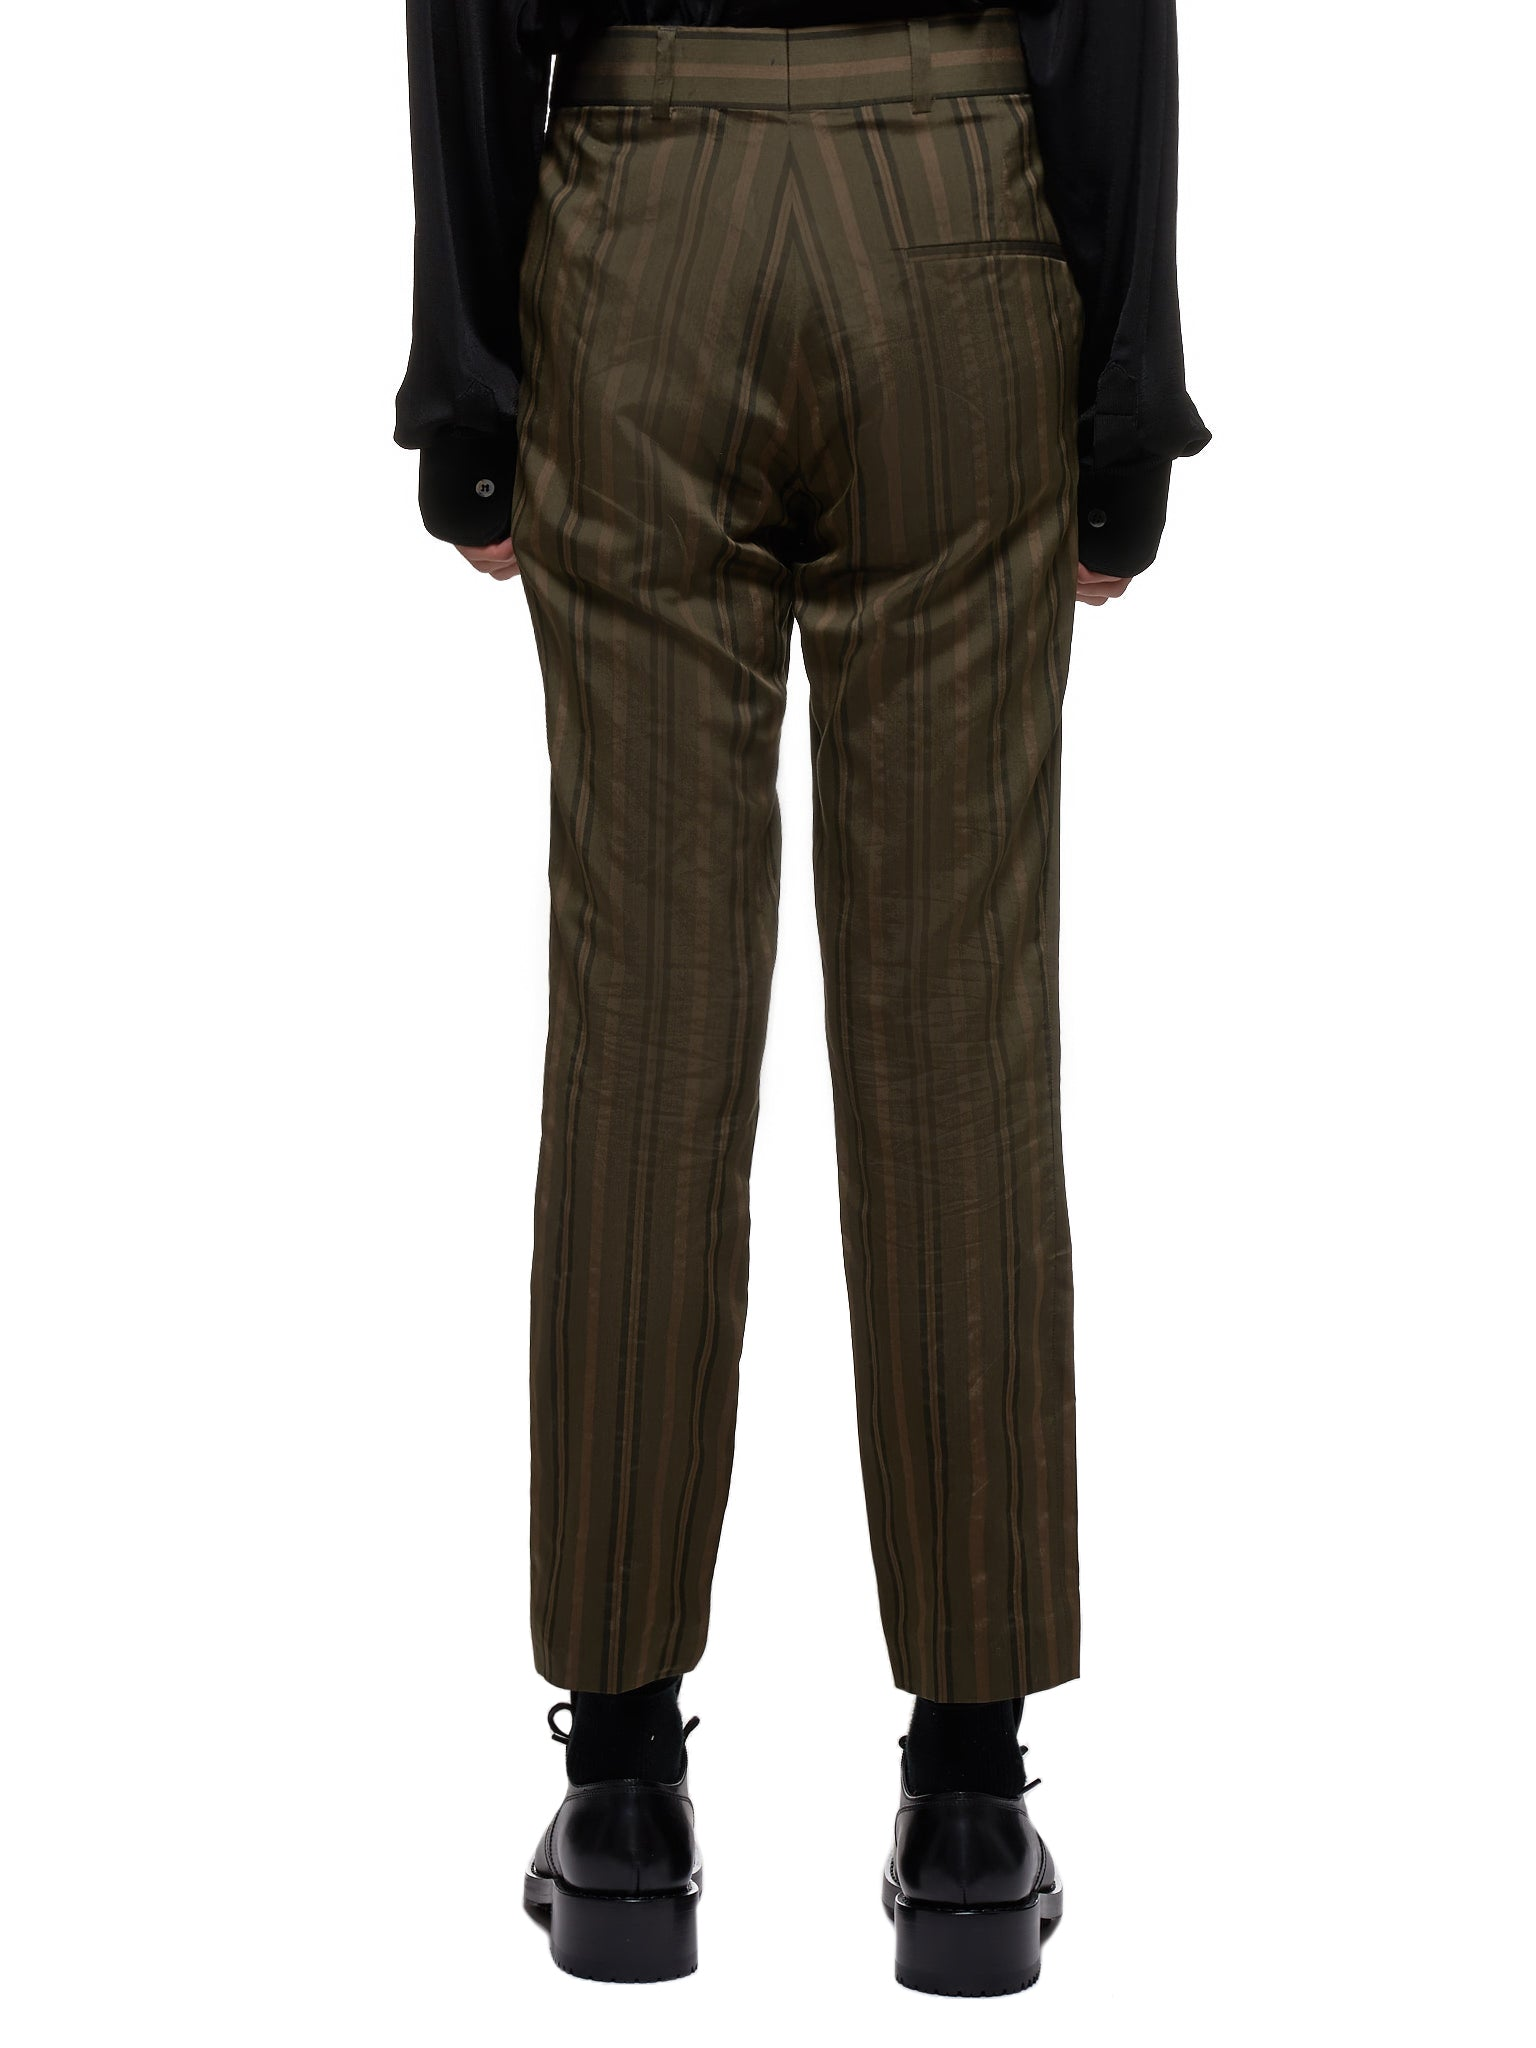 Striped Trousers (203-3400-116-035-KHAKI-BROWN)